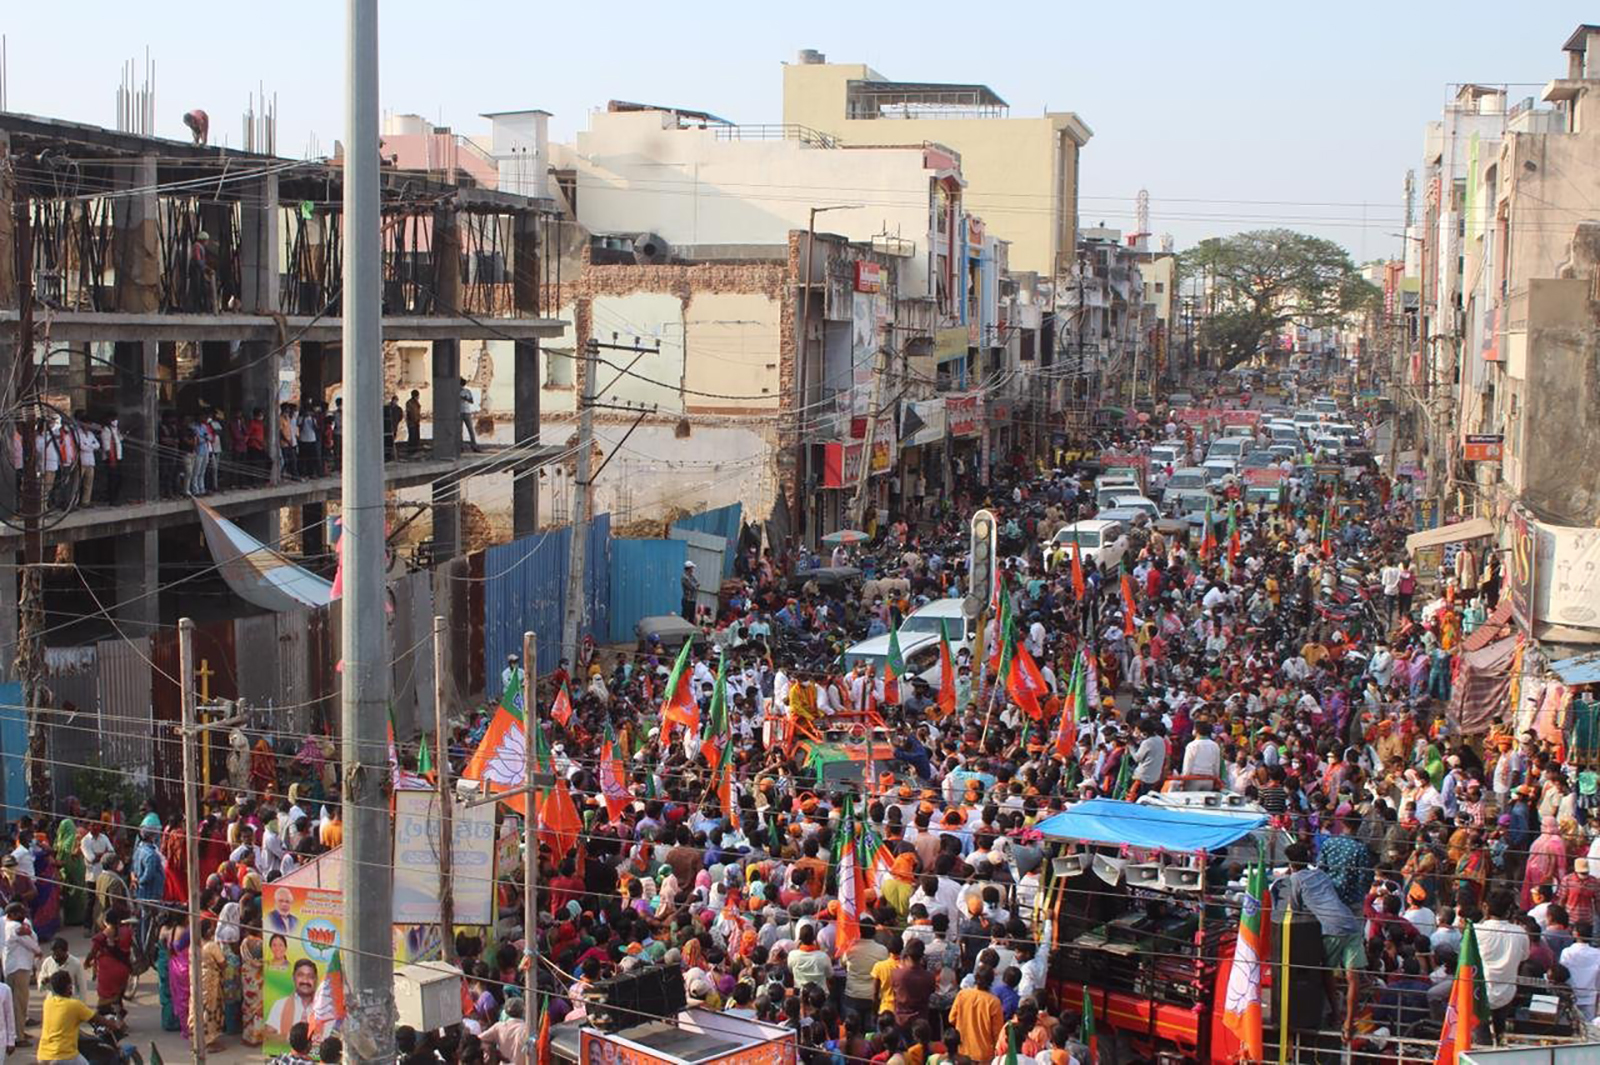 Crowds of people gathered at rallies in Greater Warangal Municipal Corporation